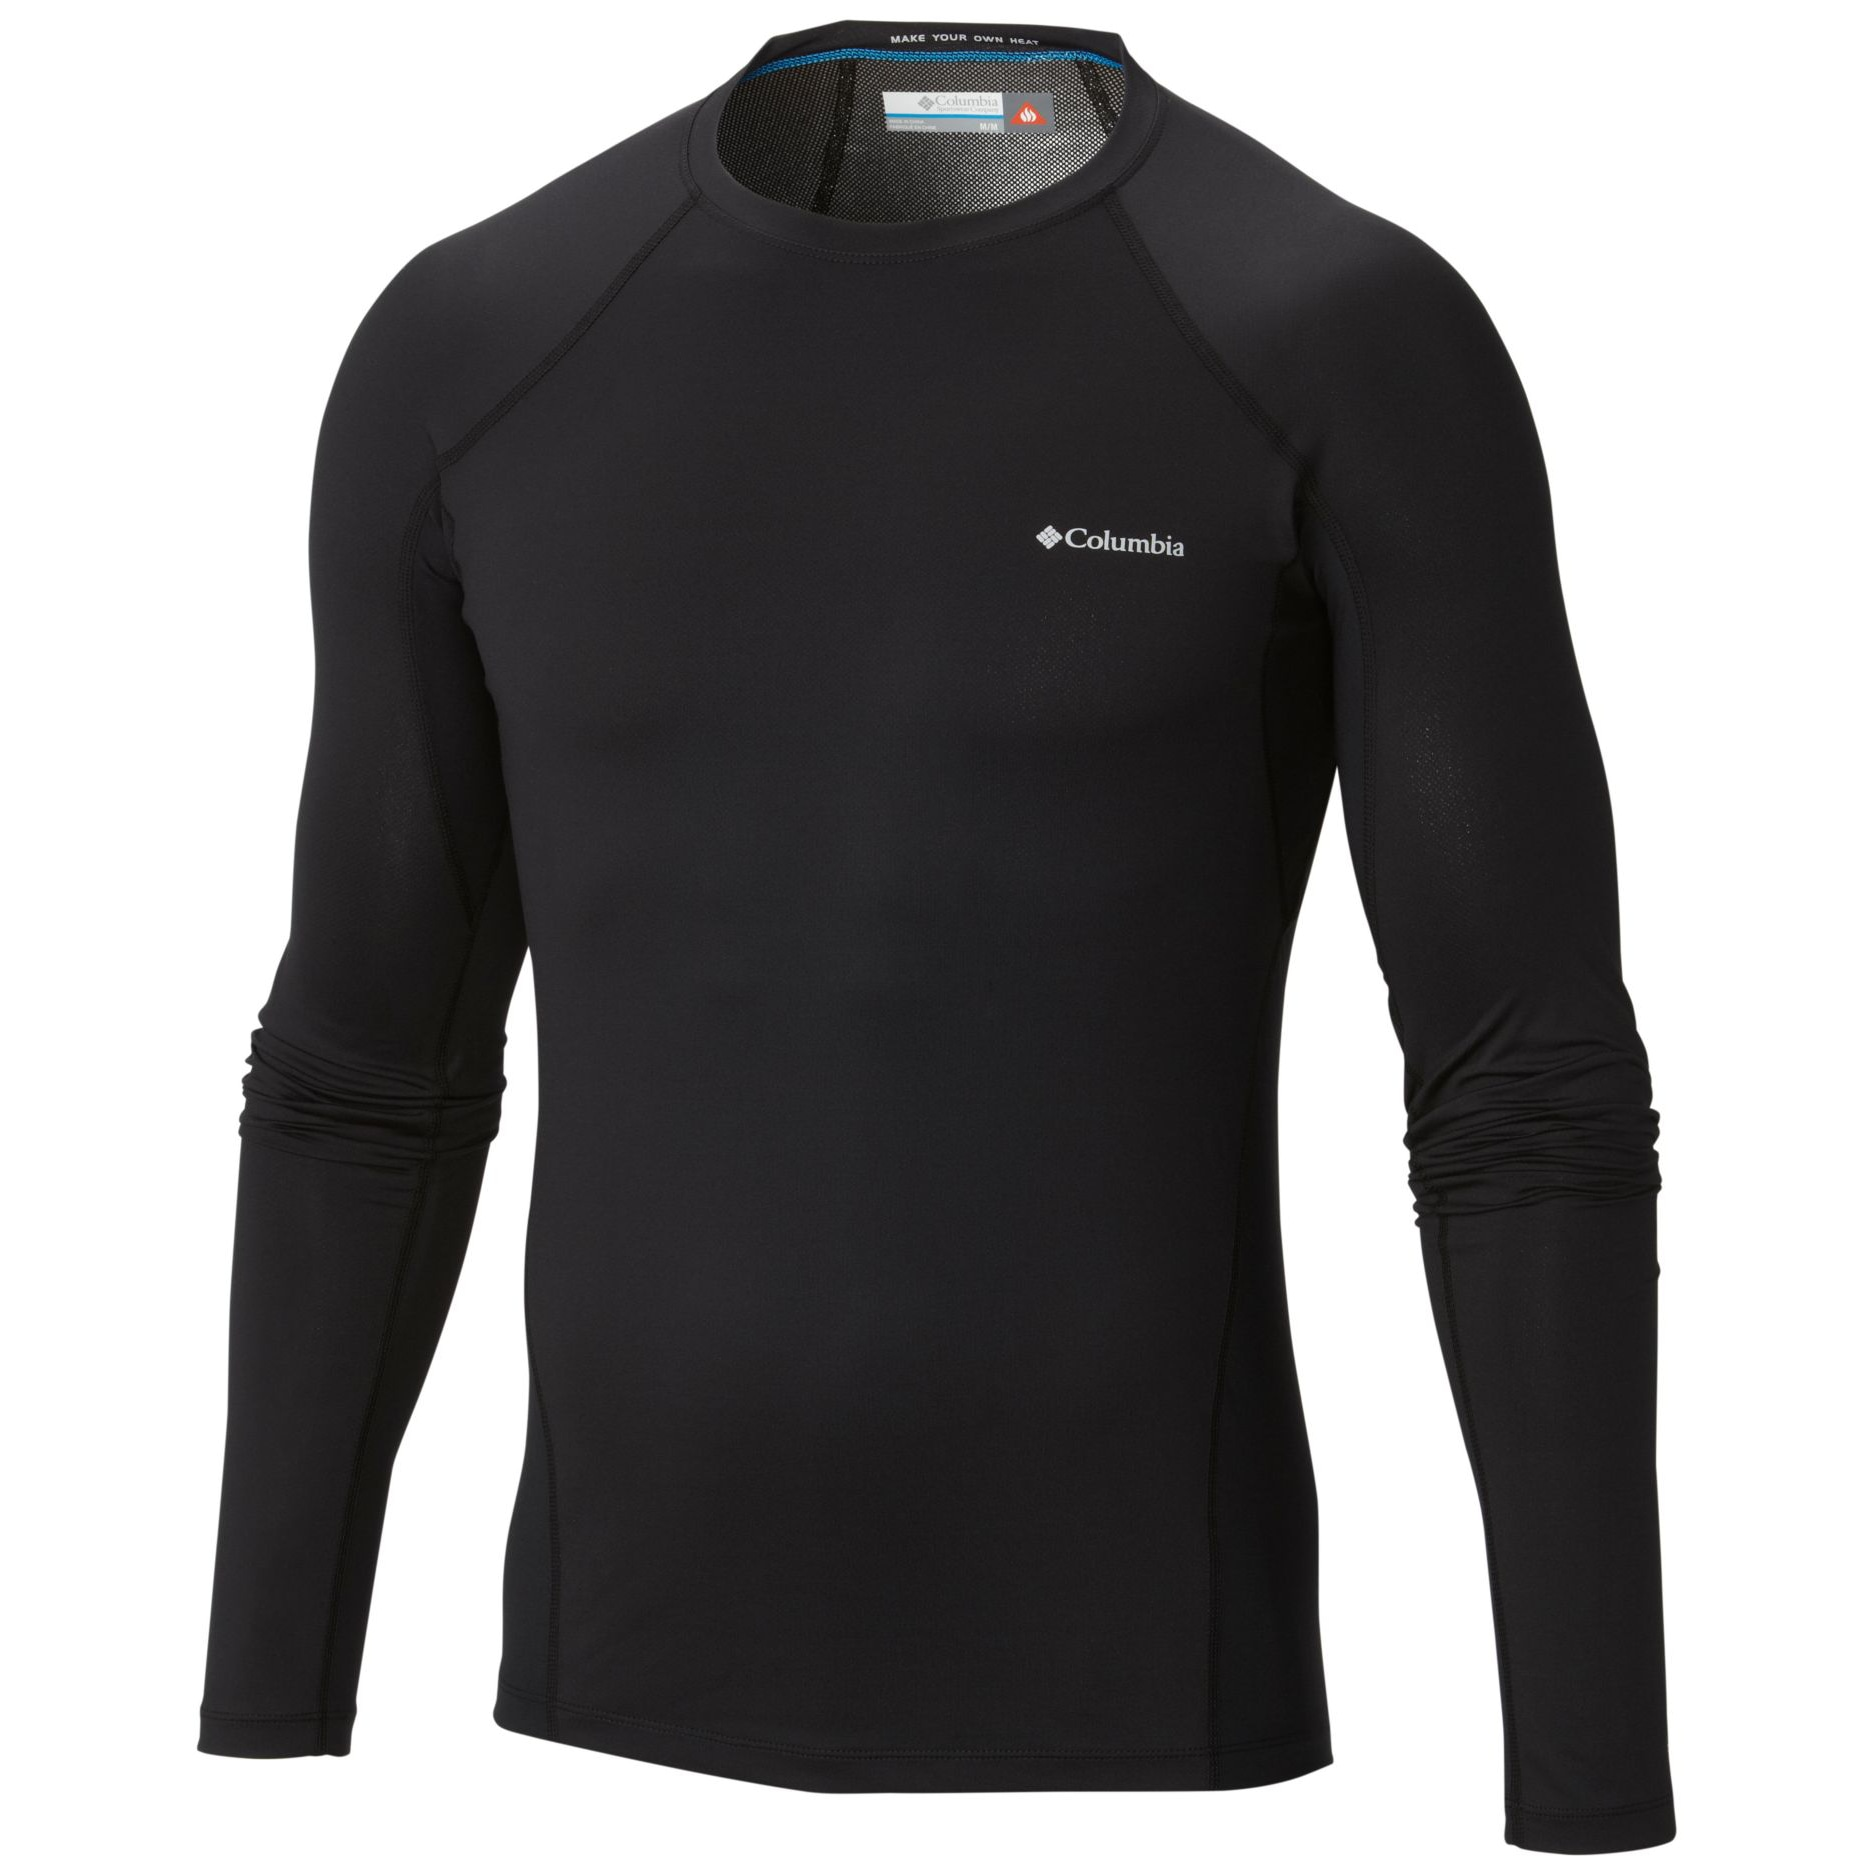 Midweight Stretch Top Long Sleeve Plus - Men's